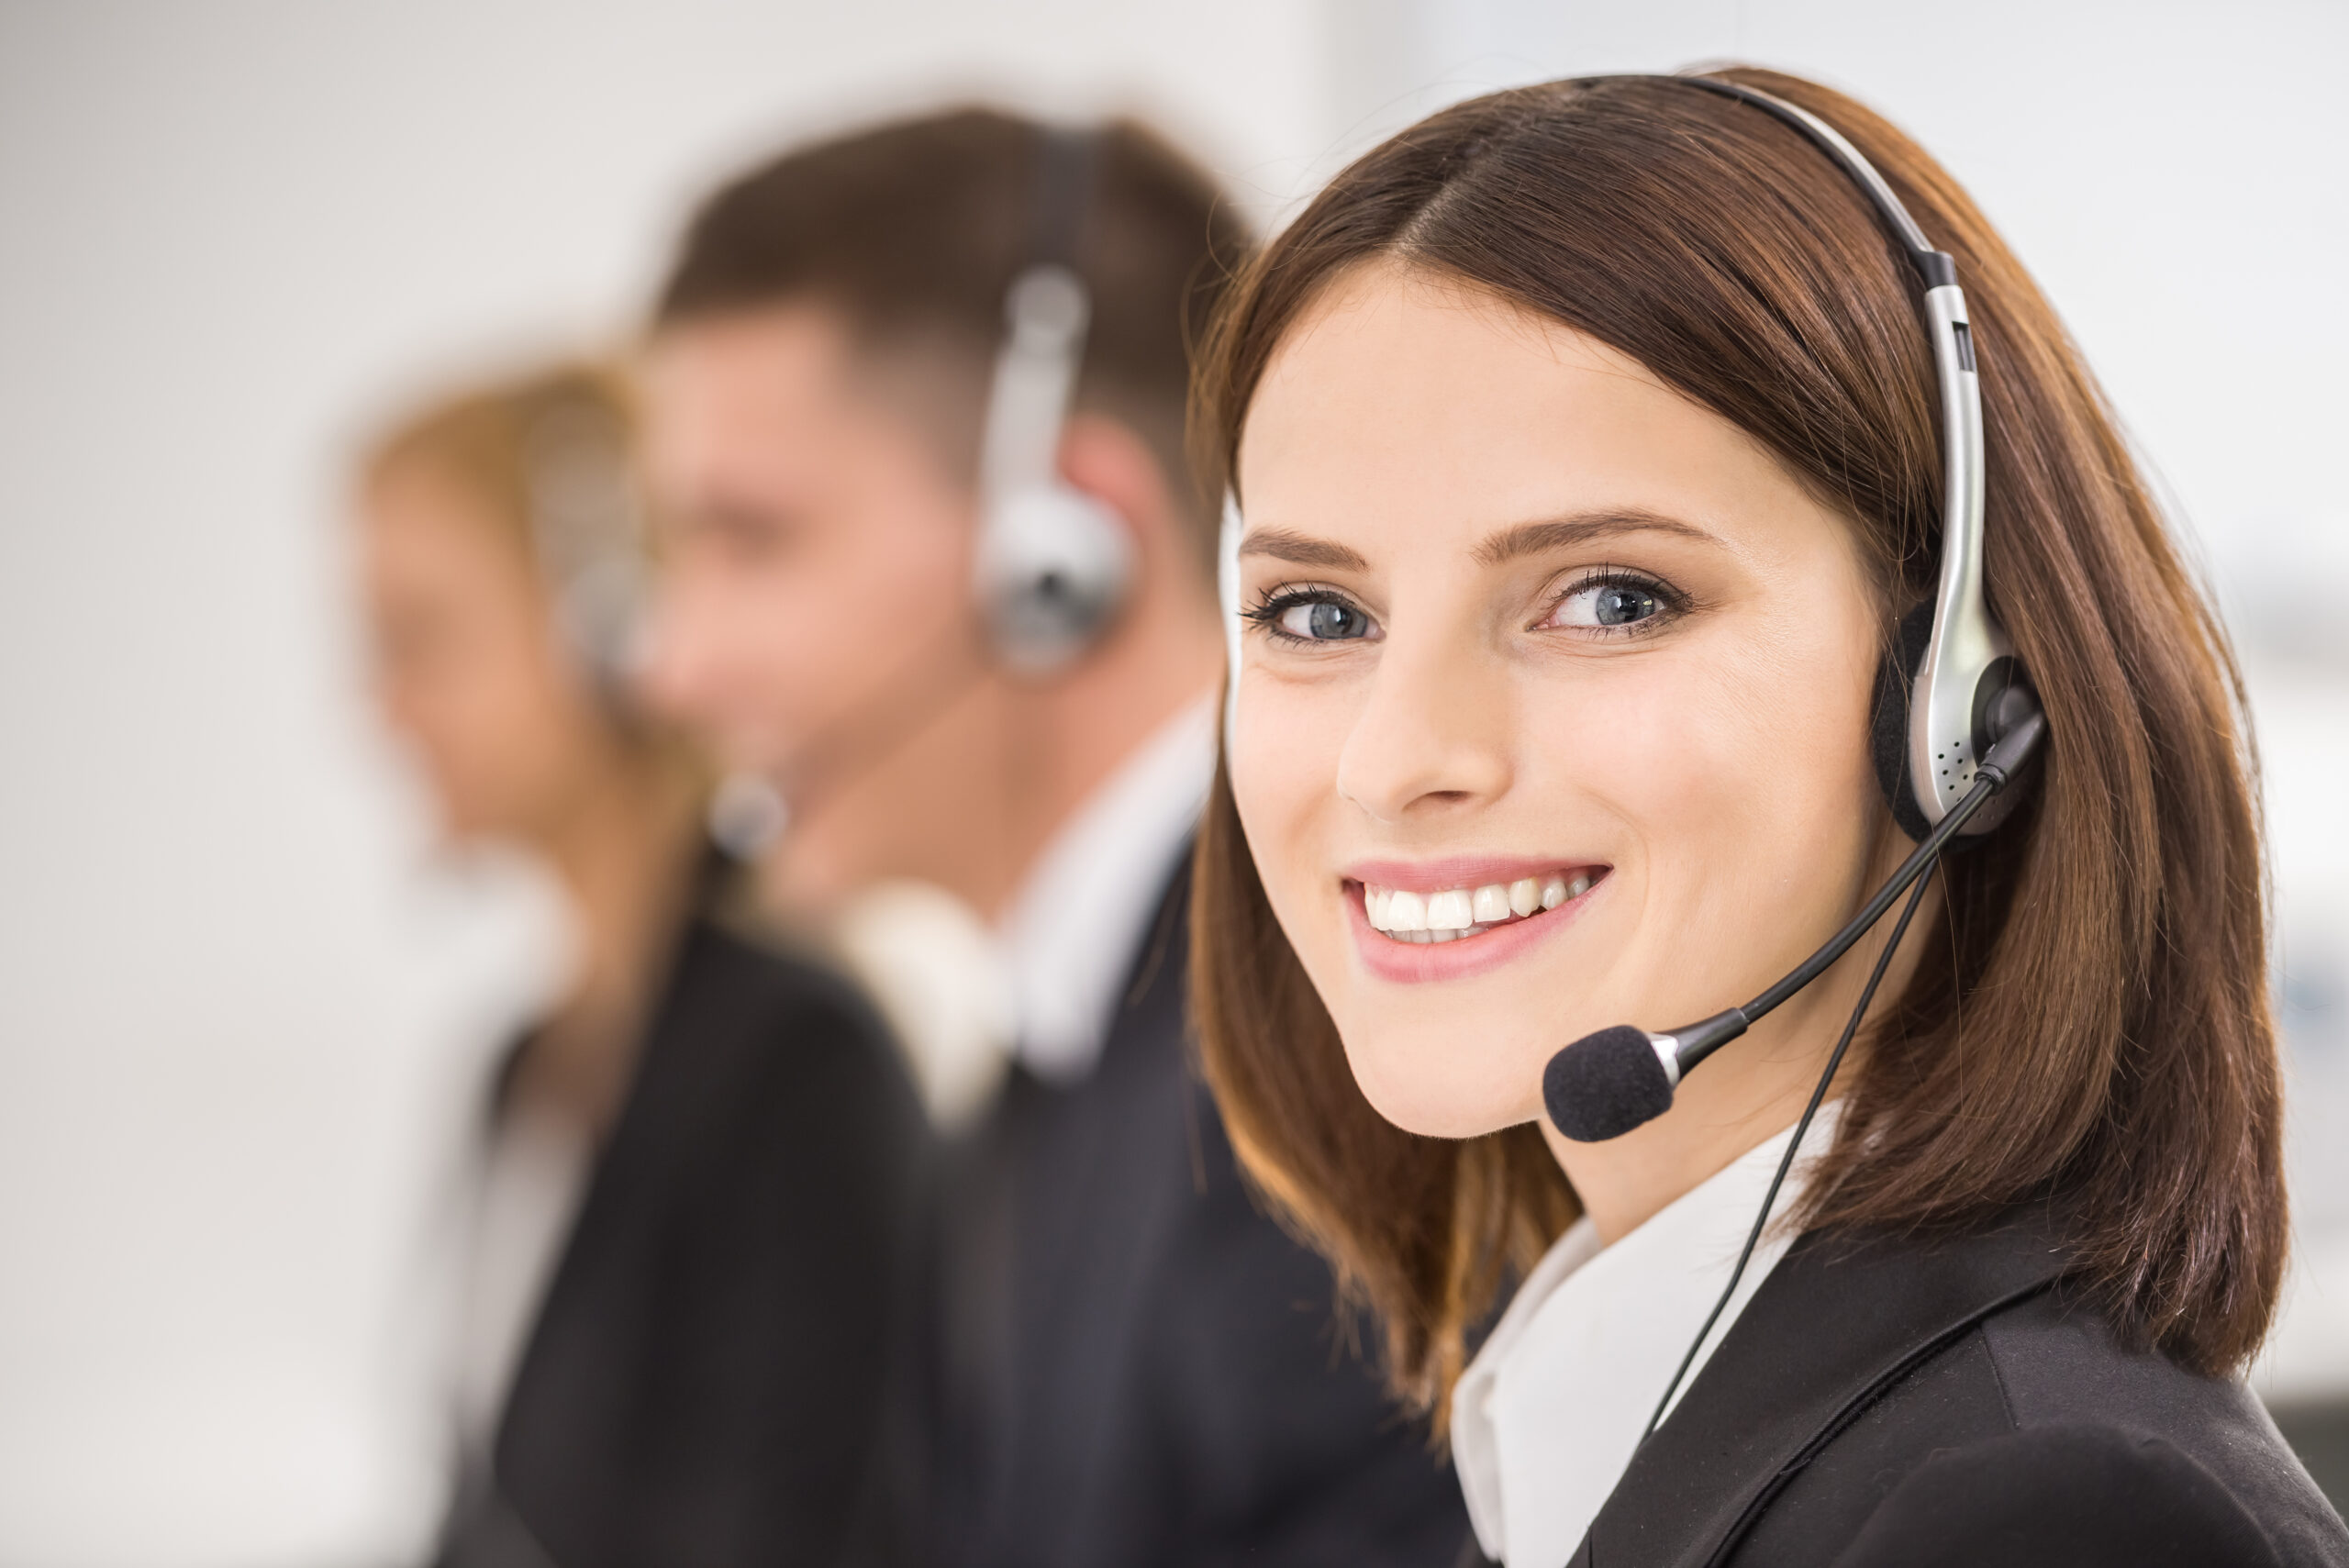 Contact Center Services in Canada